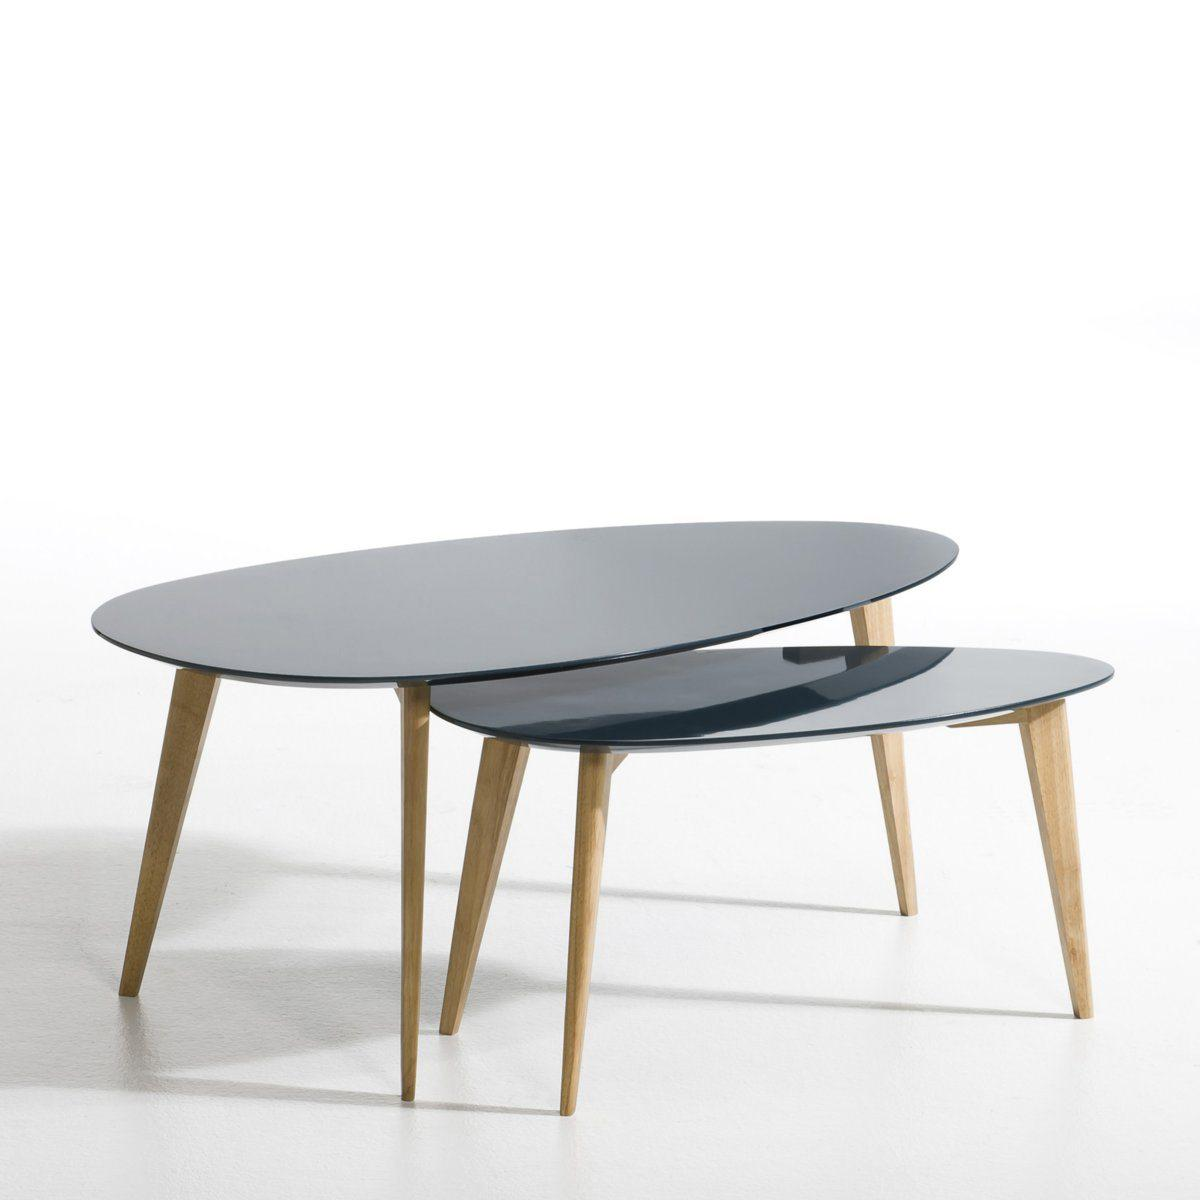 D co le design scandinave madame figaro for Table basse scandinave ampm